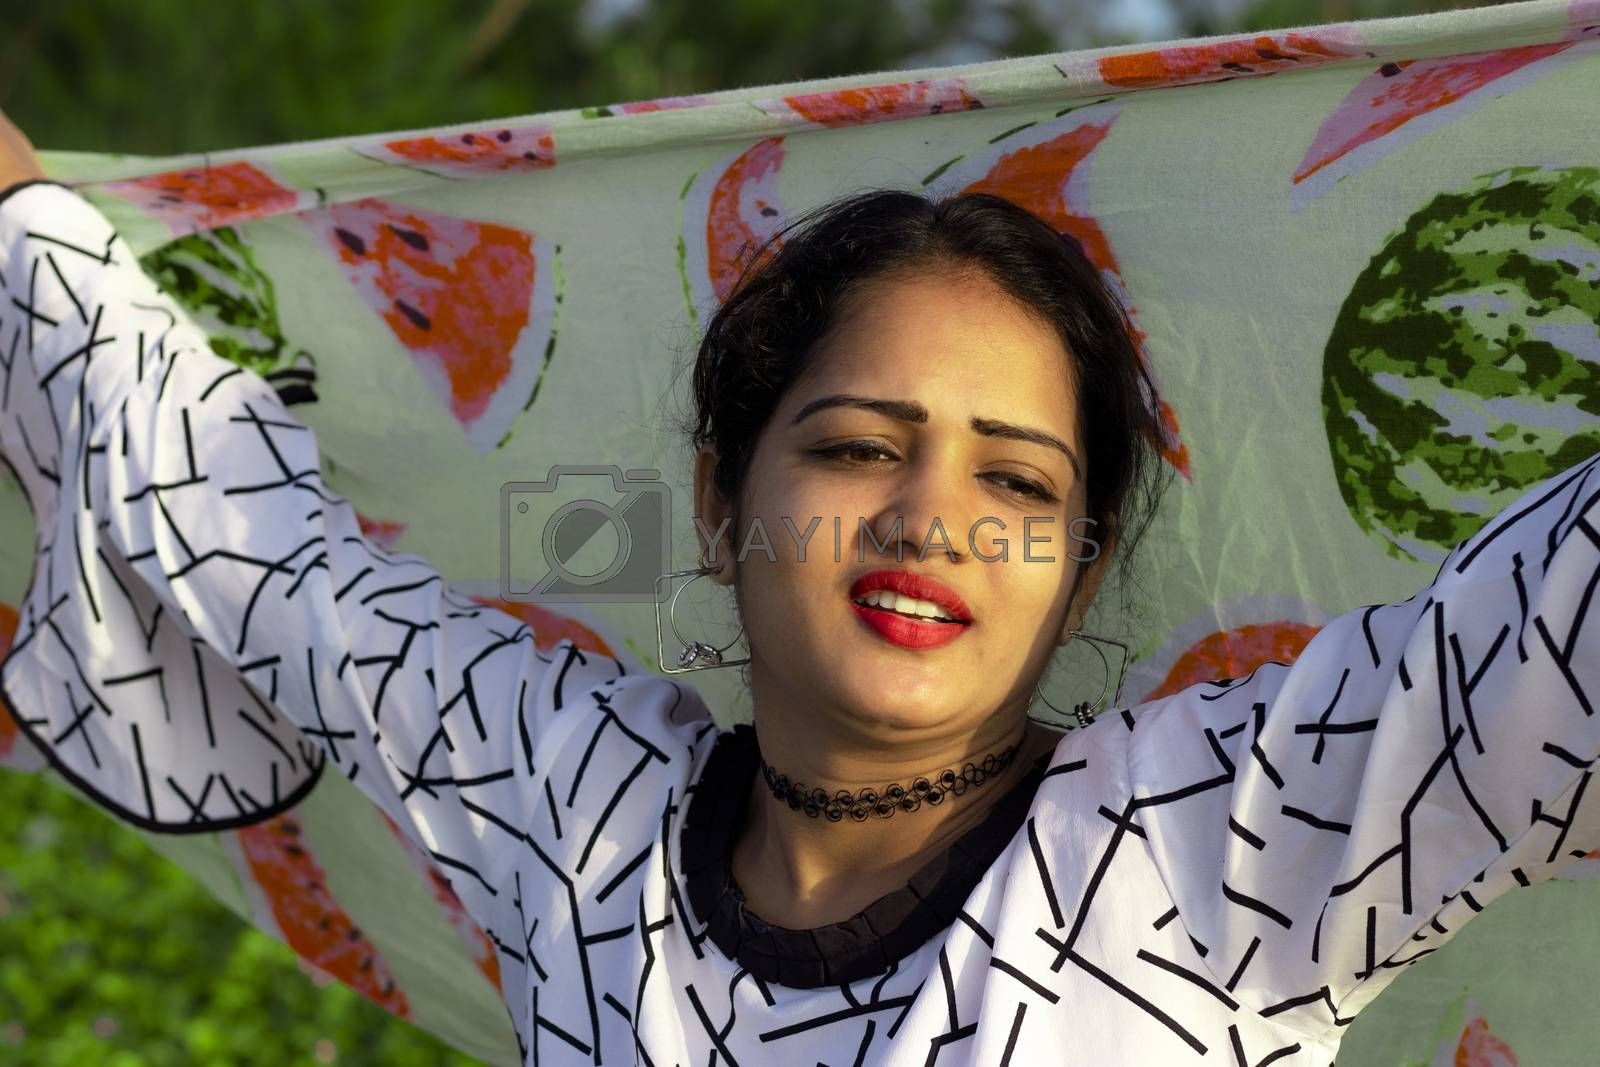 Fashionable portrait of an indian girl model with Colorful scarf waving from top of head